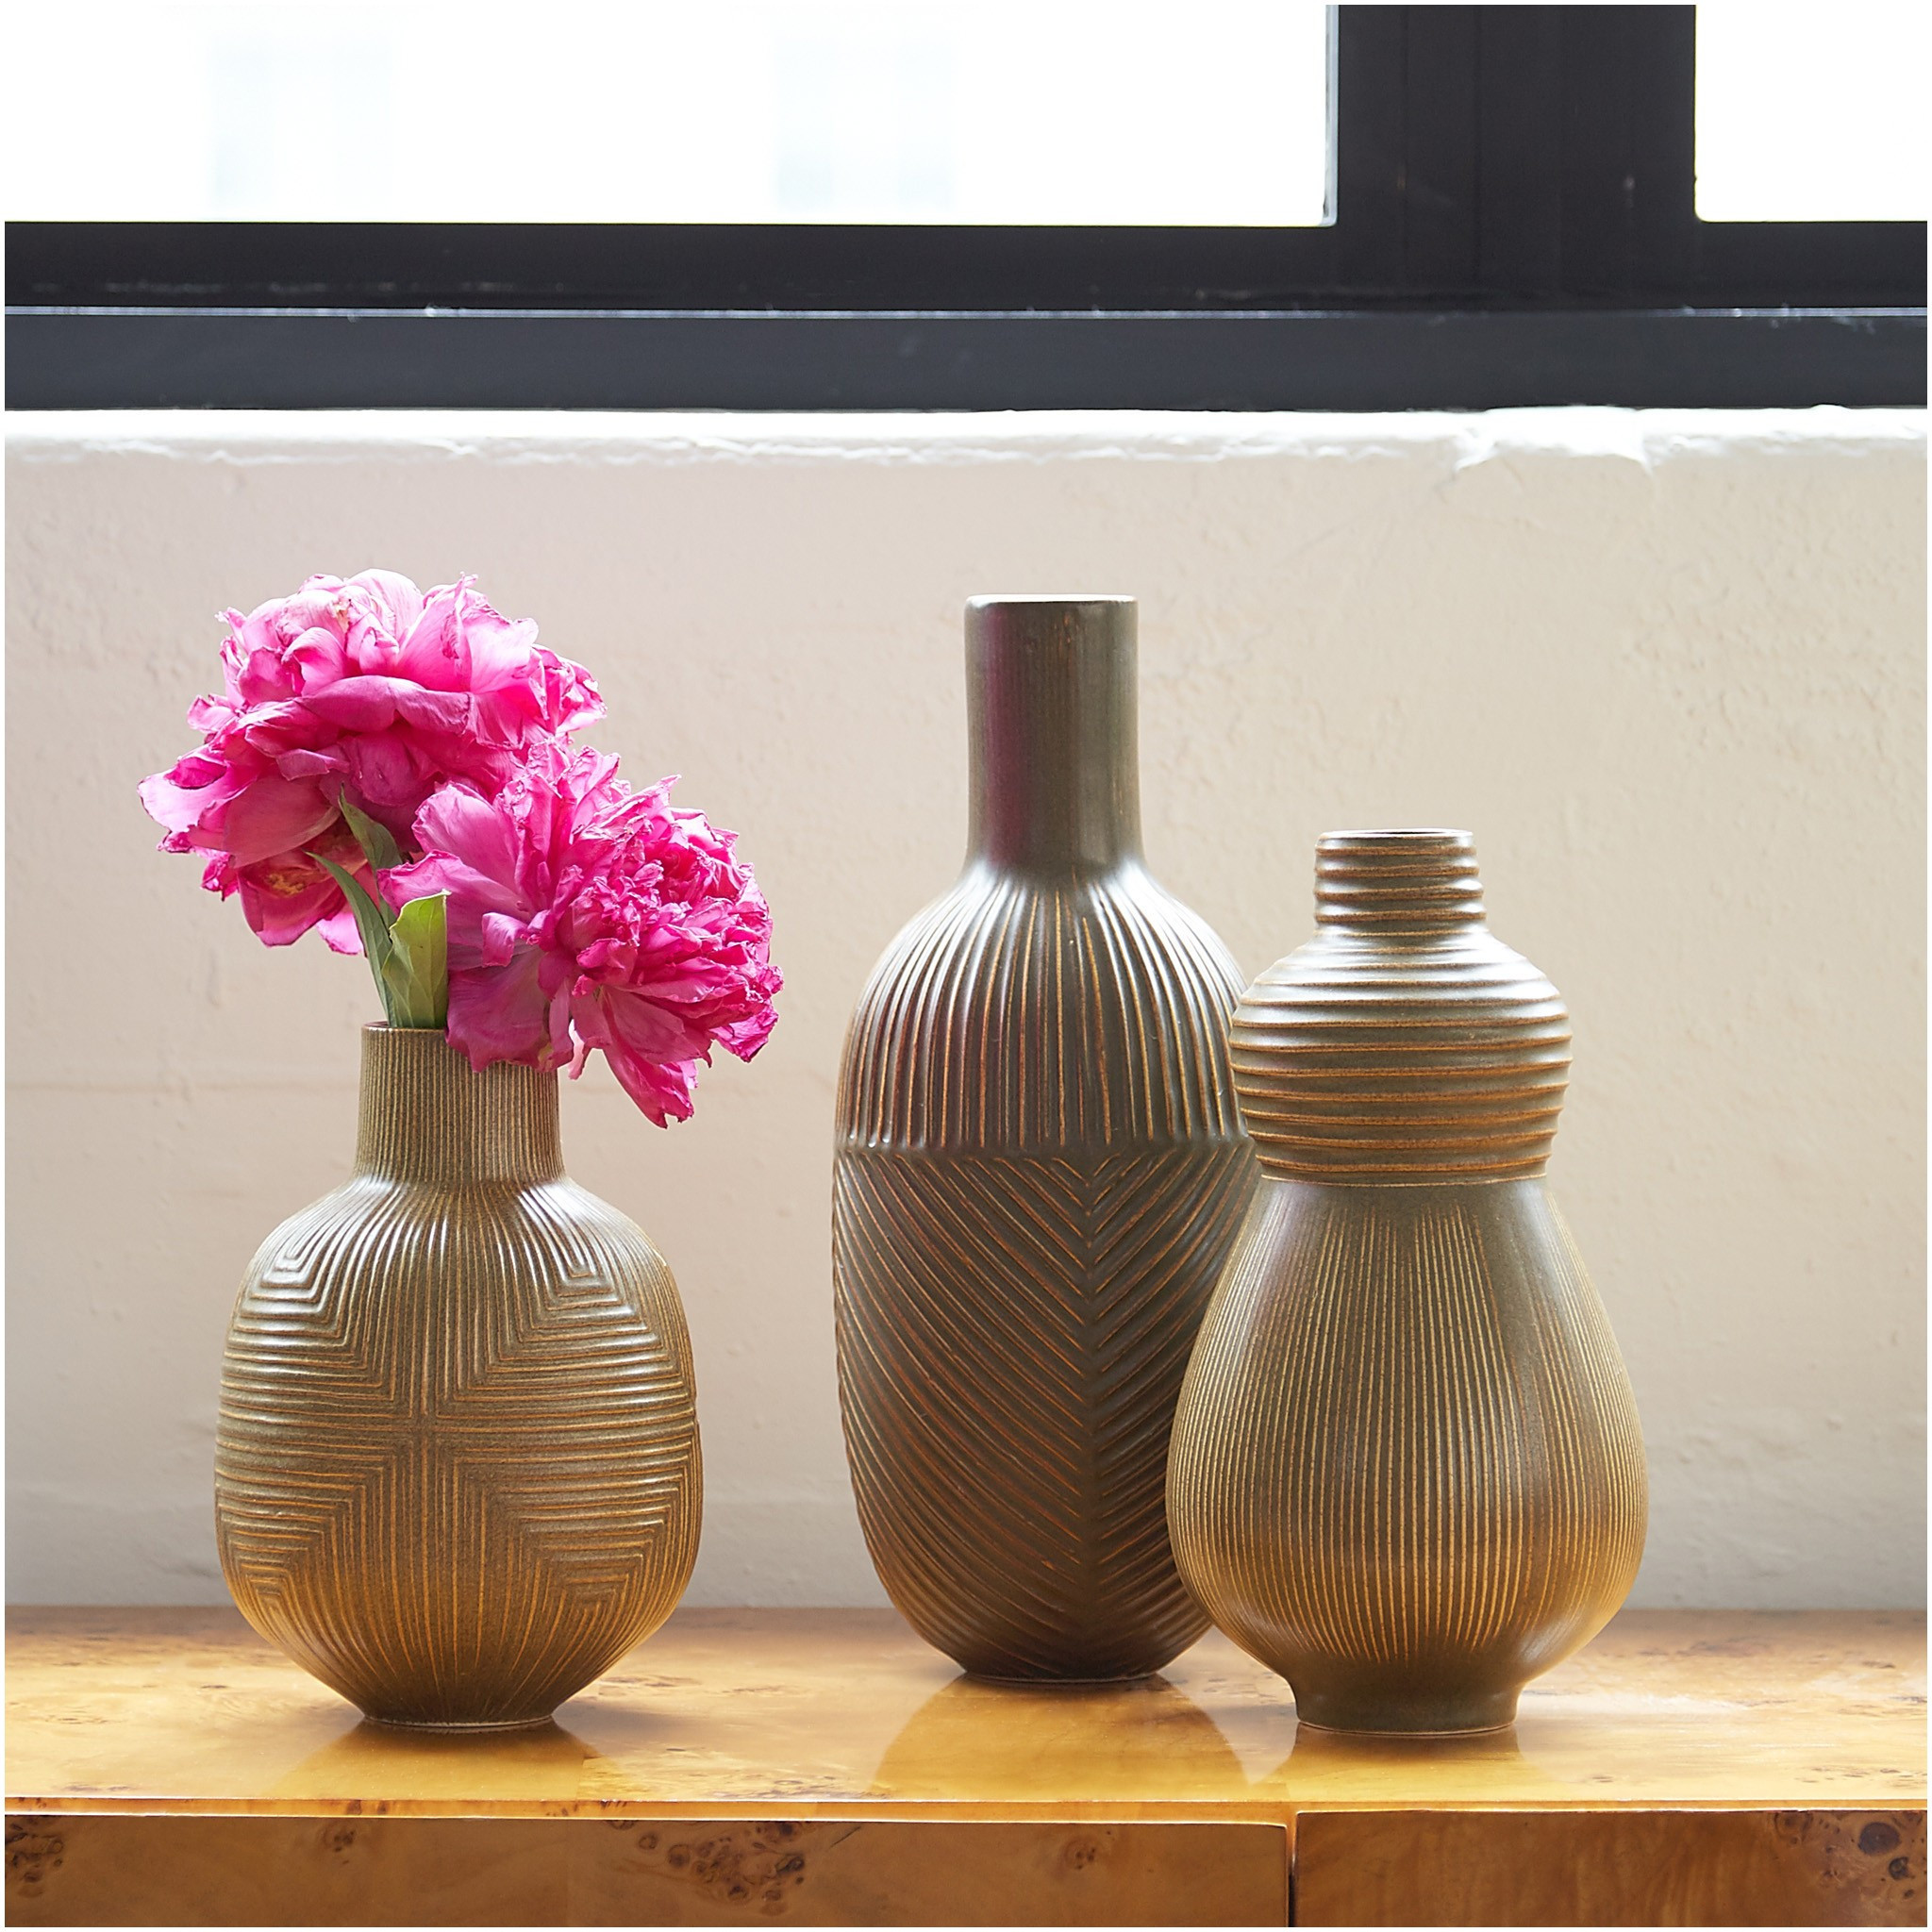 Contemporary Decorative Vases Of 21 Beau Decorative Vases Anciendemutu org In Modern Decor Pottery Relief Vases 2015 Styled B Jonathan Adlerh I 18d